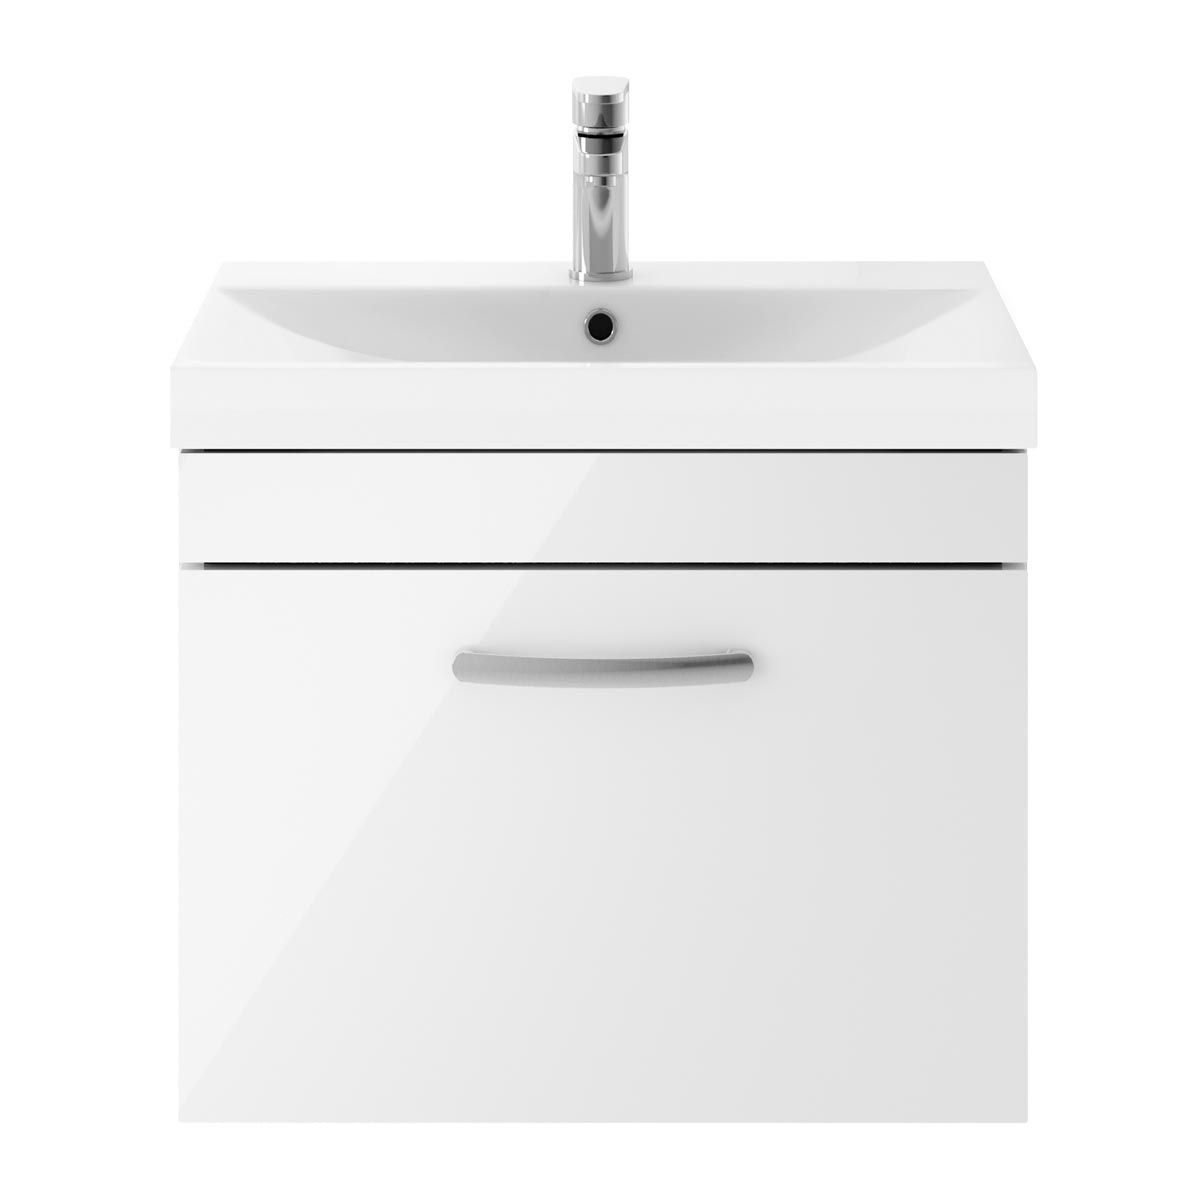 Nuie Athena Gloss White 1 Drawer Wall Hung Vanity Unit with 50mm Profile Basin 600mm